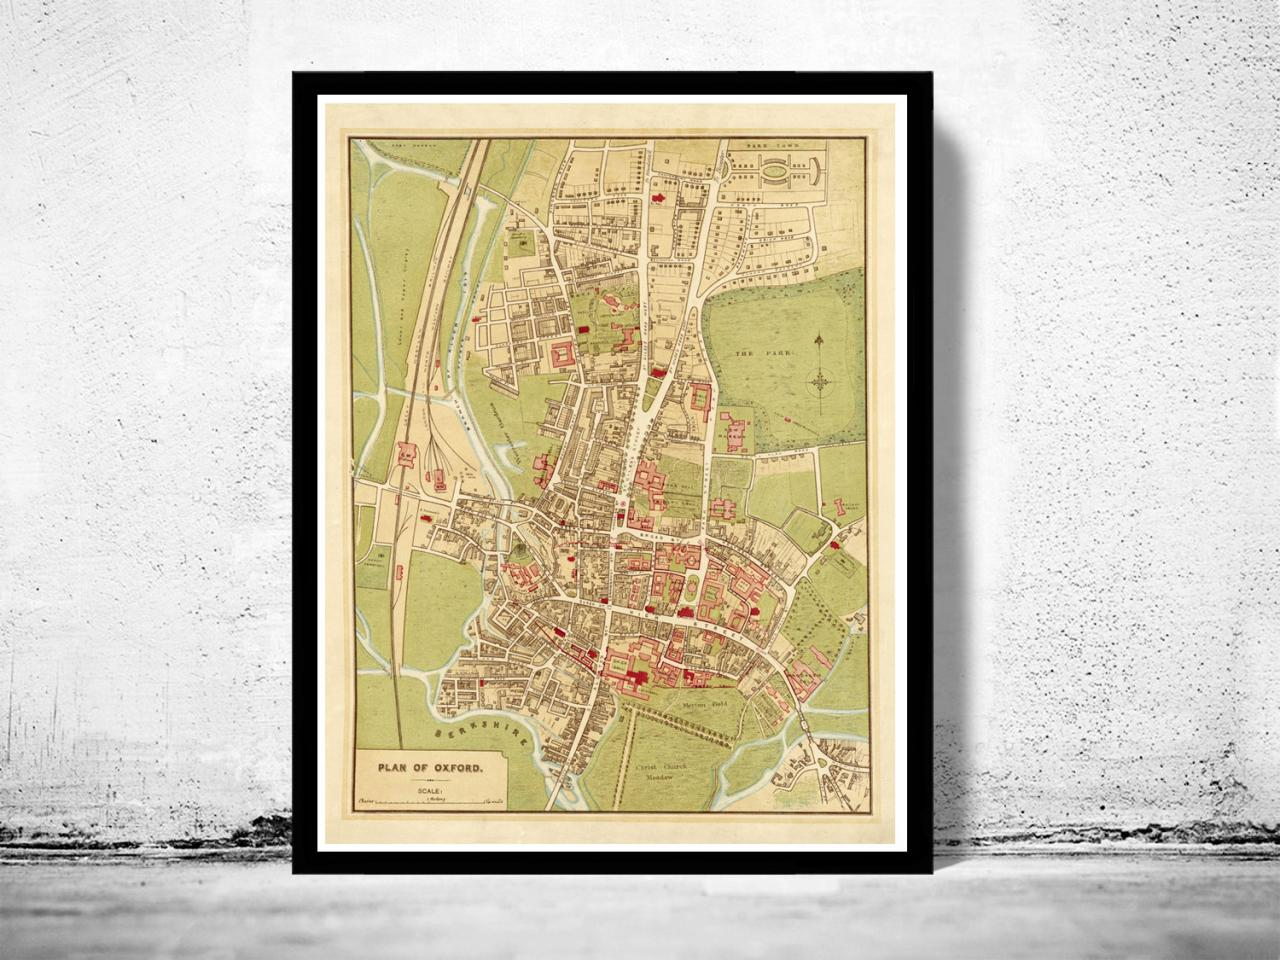 Old Map of Oxford 1910, England United Kingdom